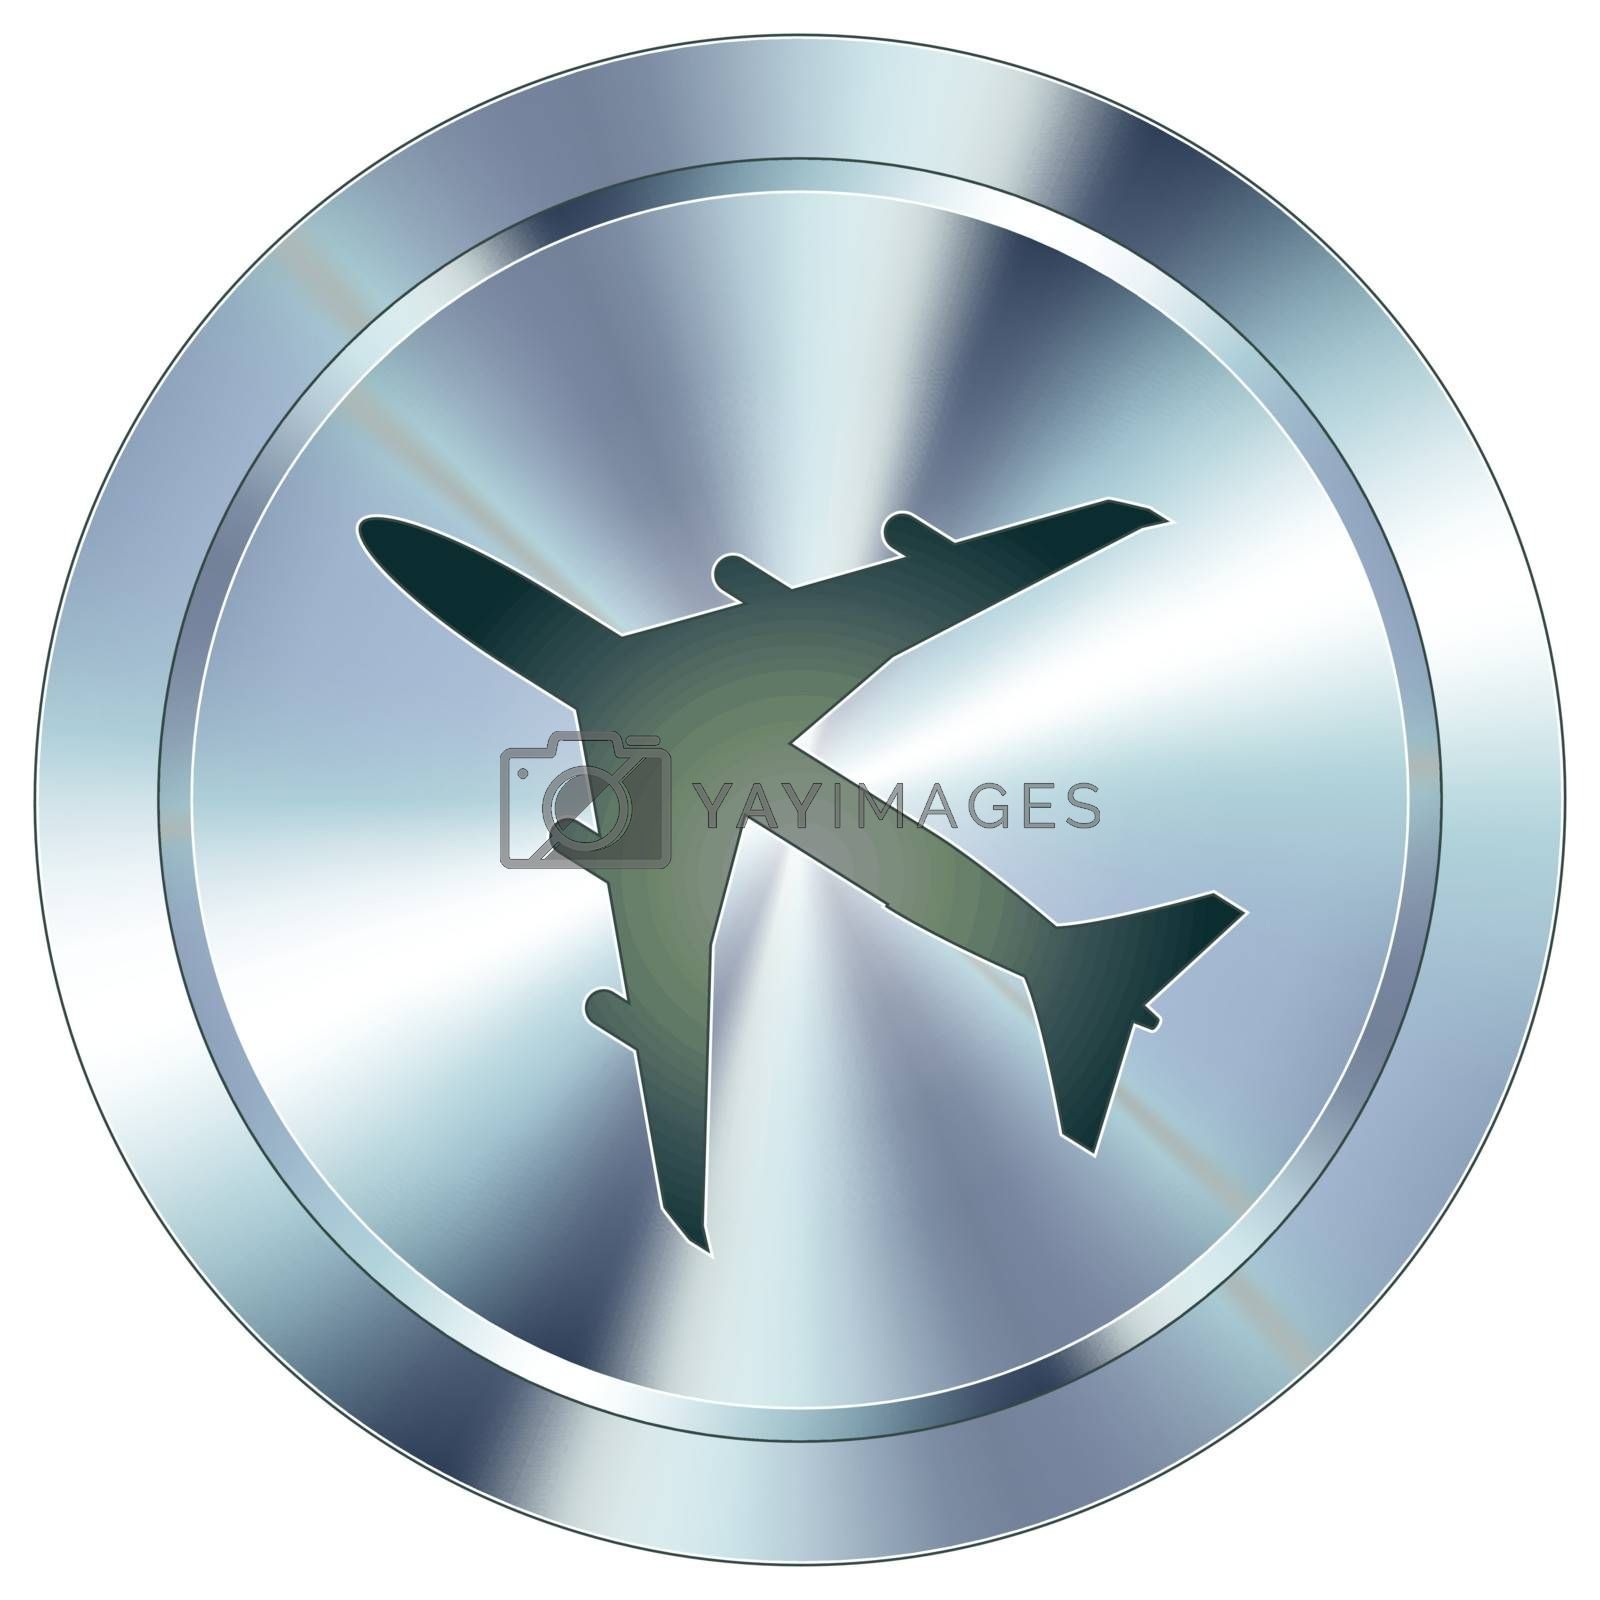 Airplane or airport icon on round stainless steel modern industrial button